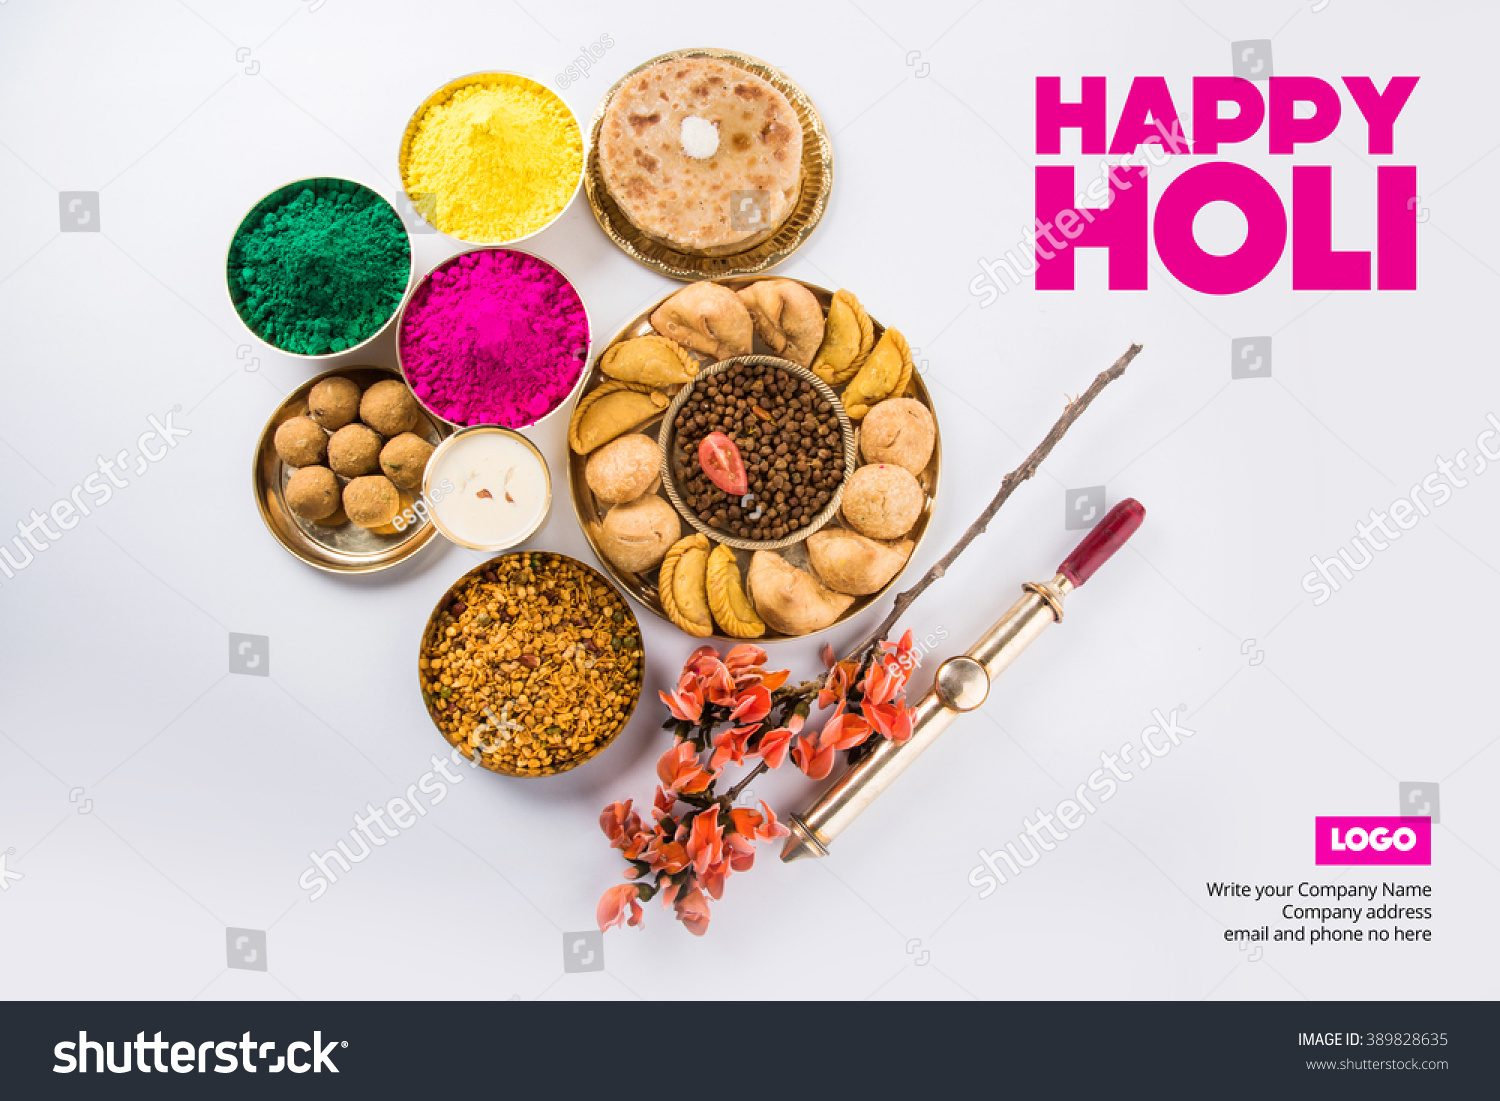 Happy Holi Greeting Card Designed Showing Stock Photo Edit Now